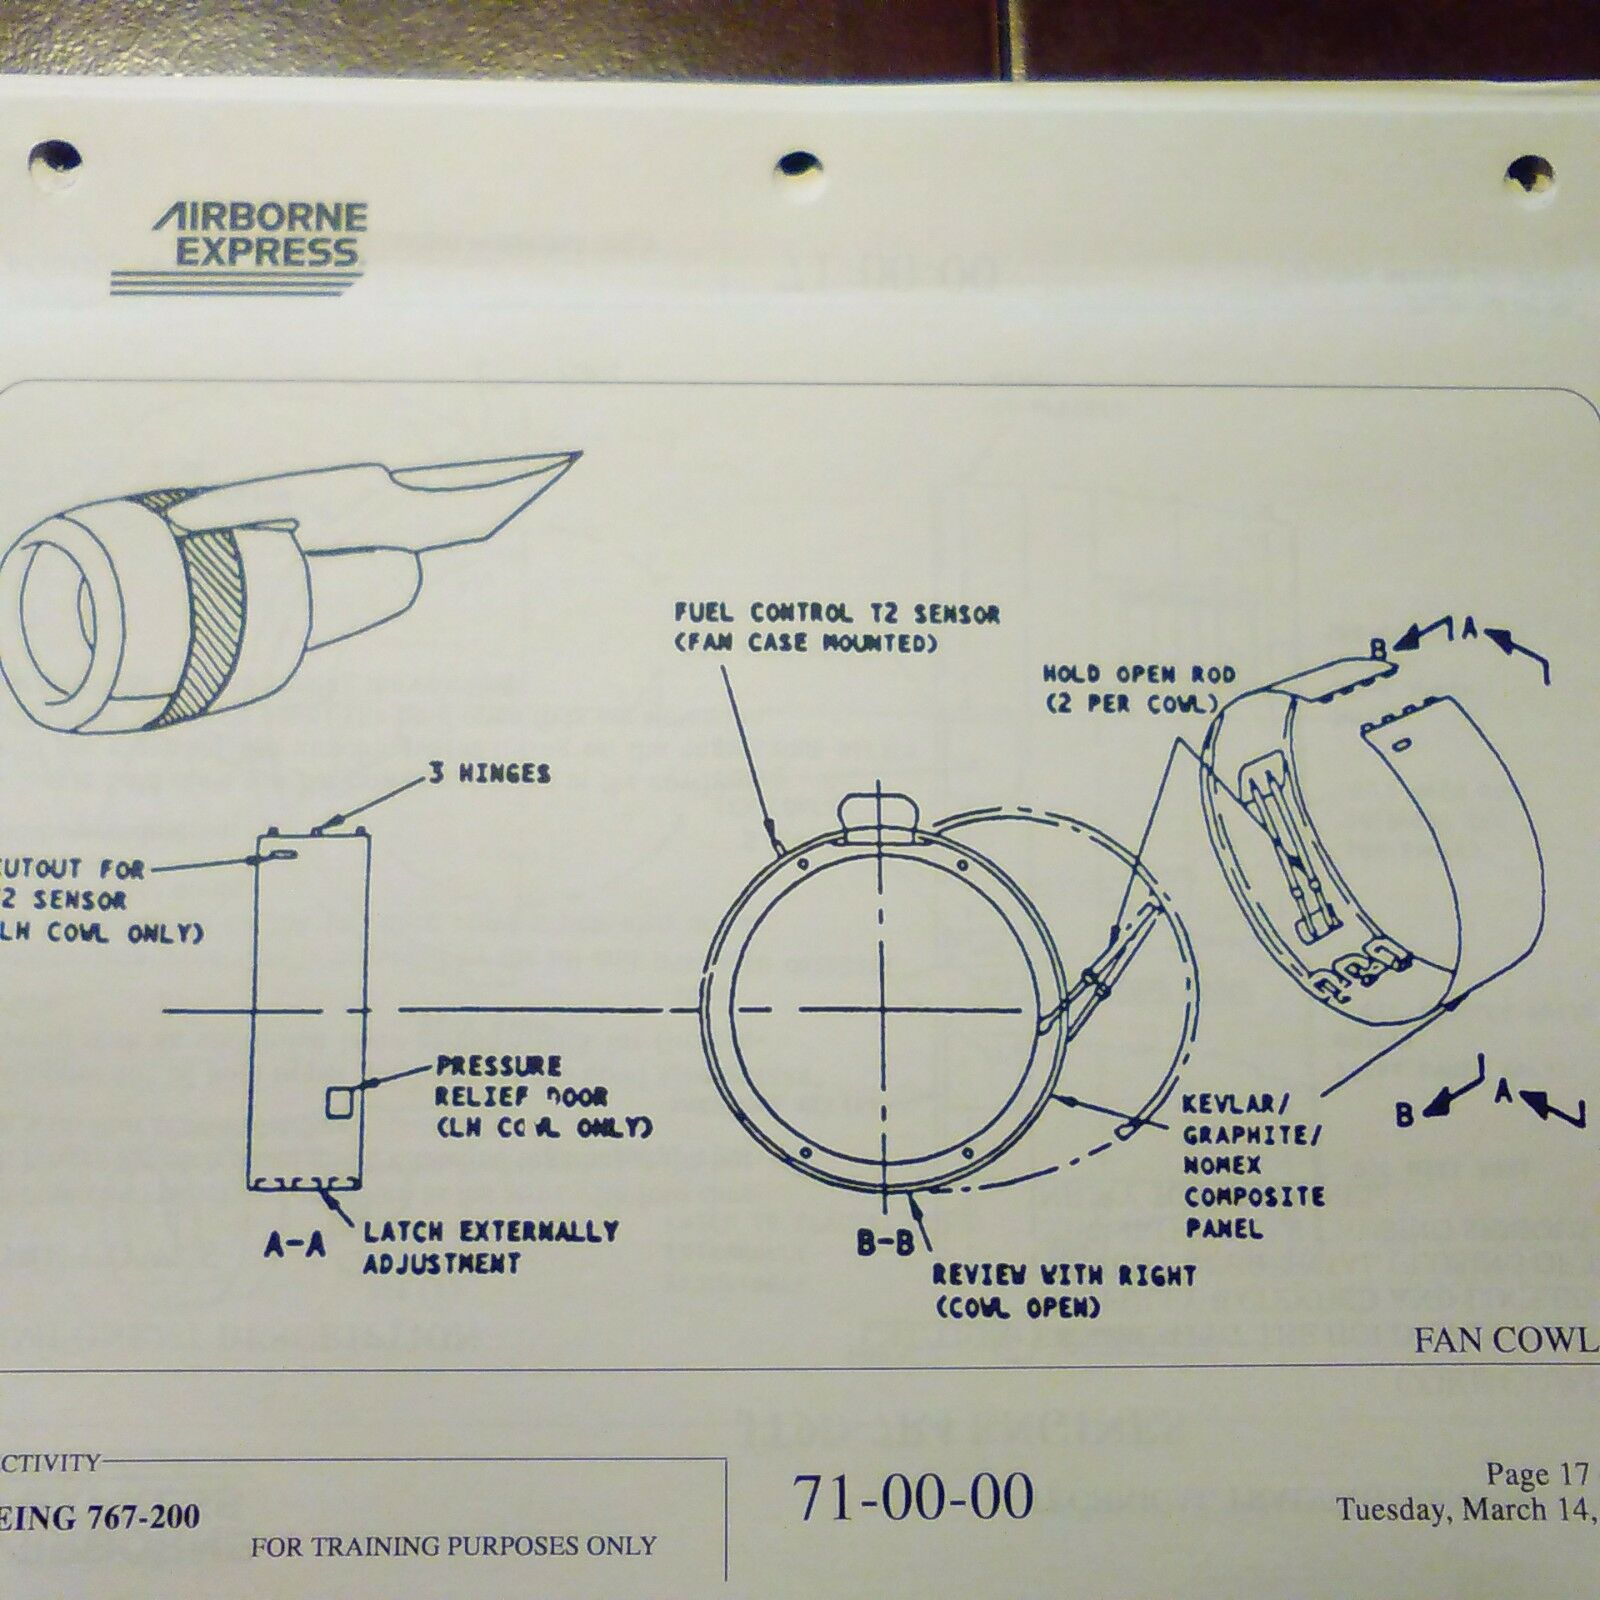 pratt whitney jt9d 7r4 technical training manual 190893530553 rh acrosups top JT8D Cutaway Model JT8D